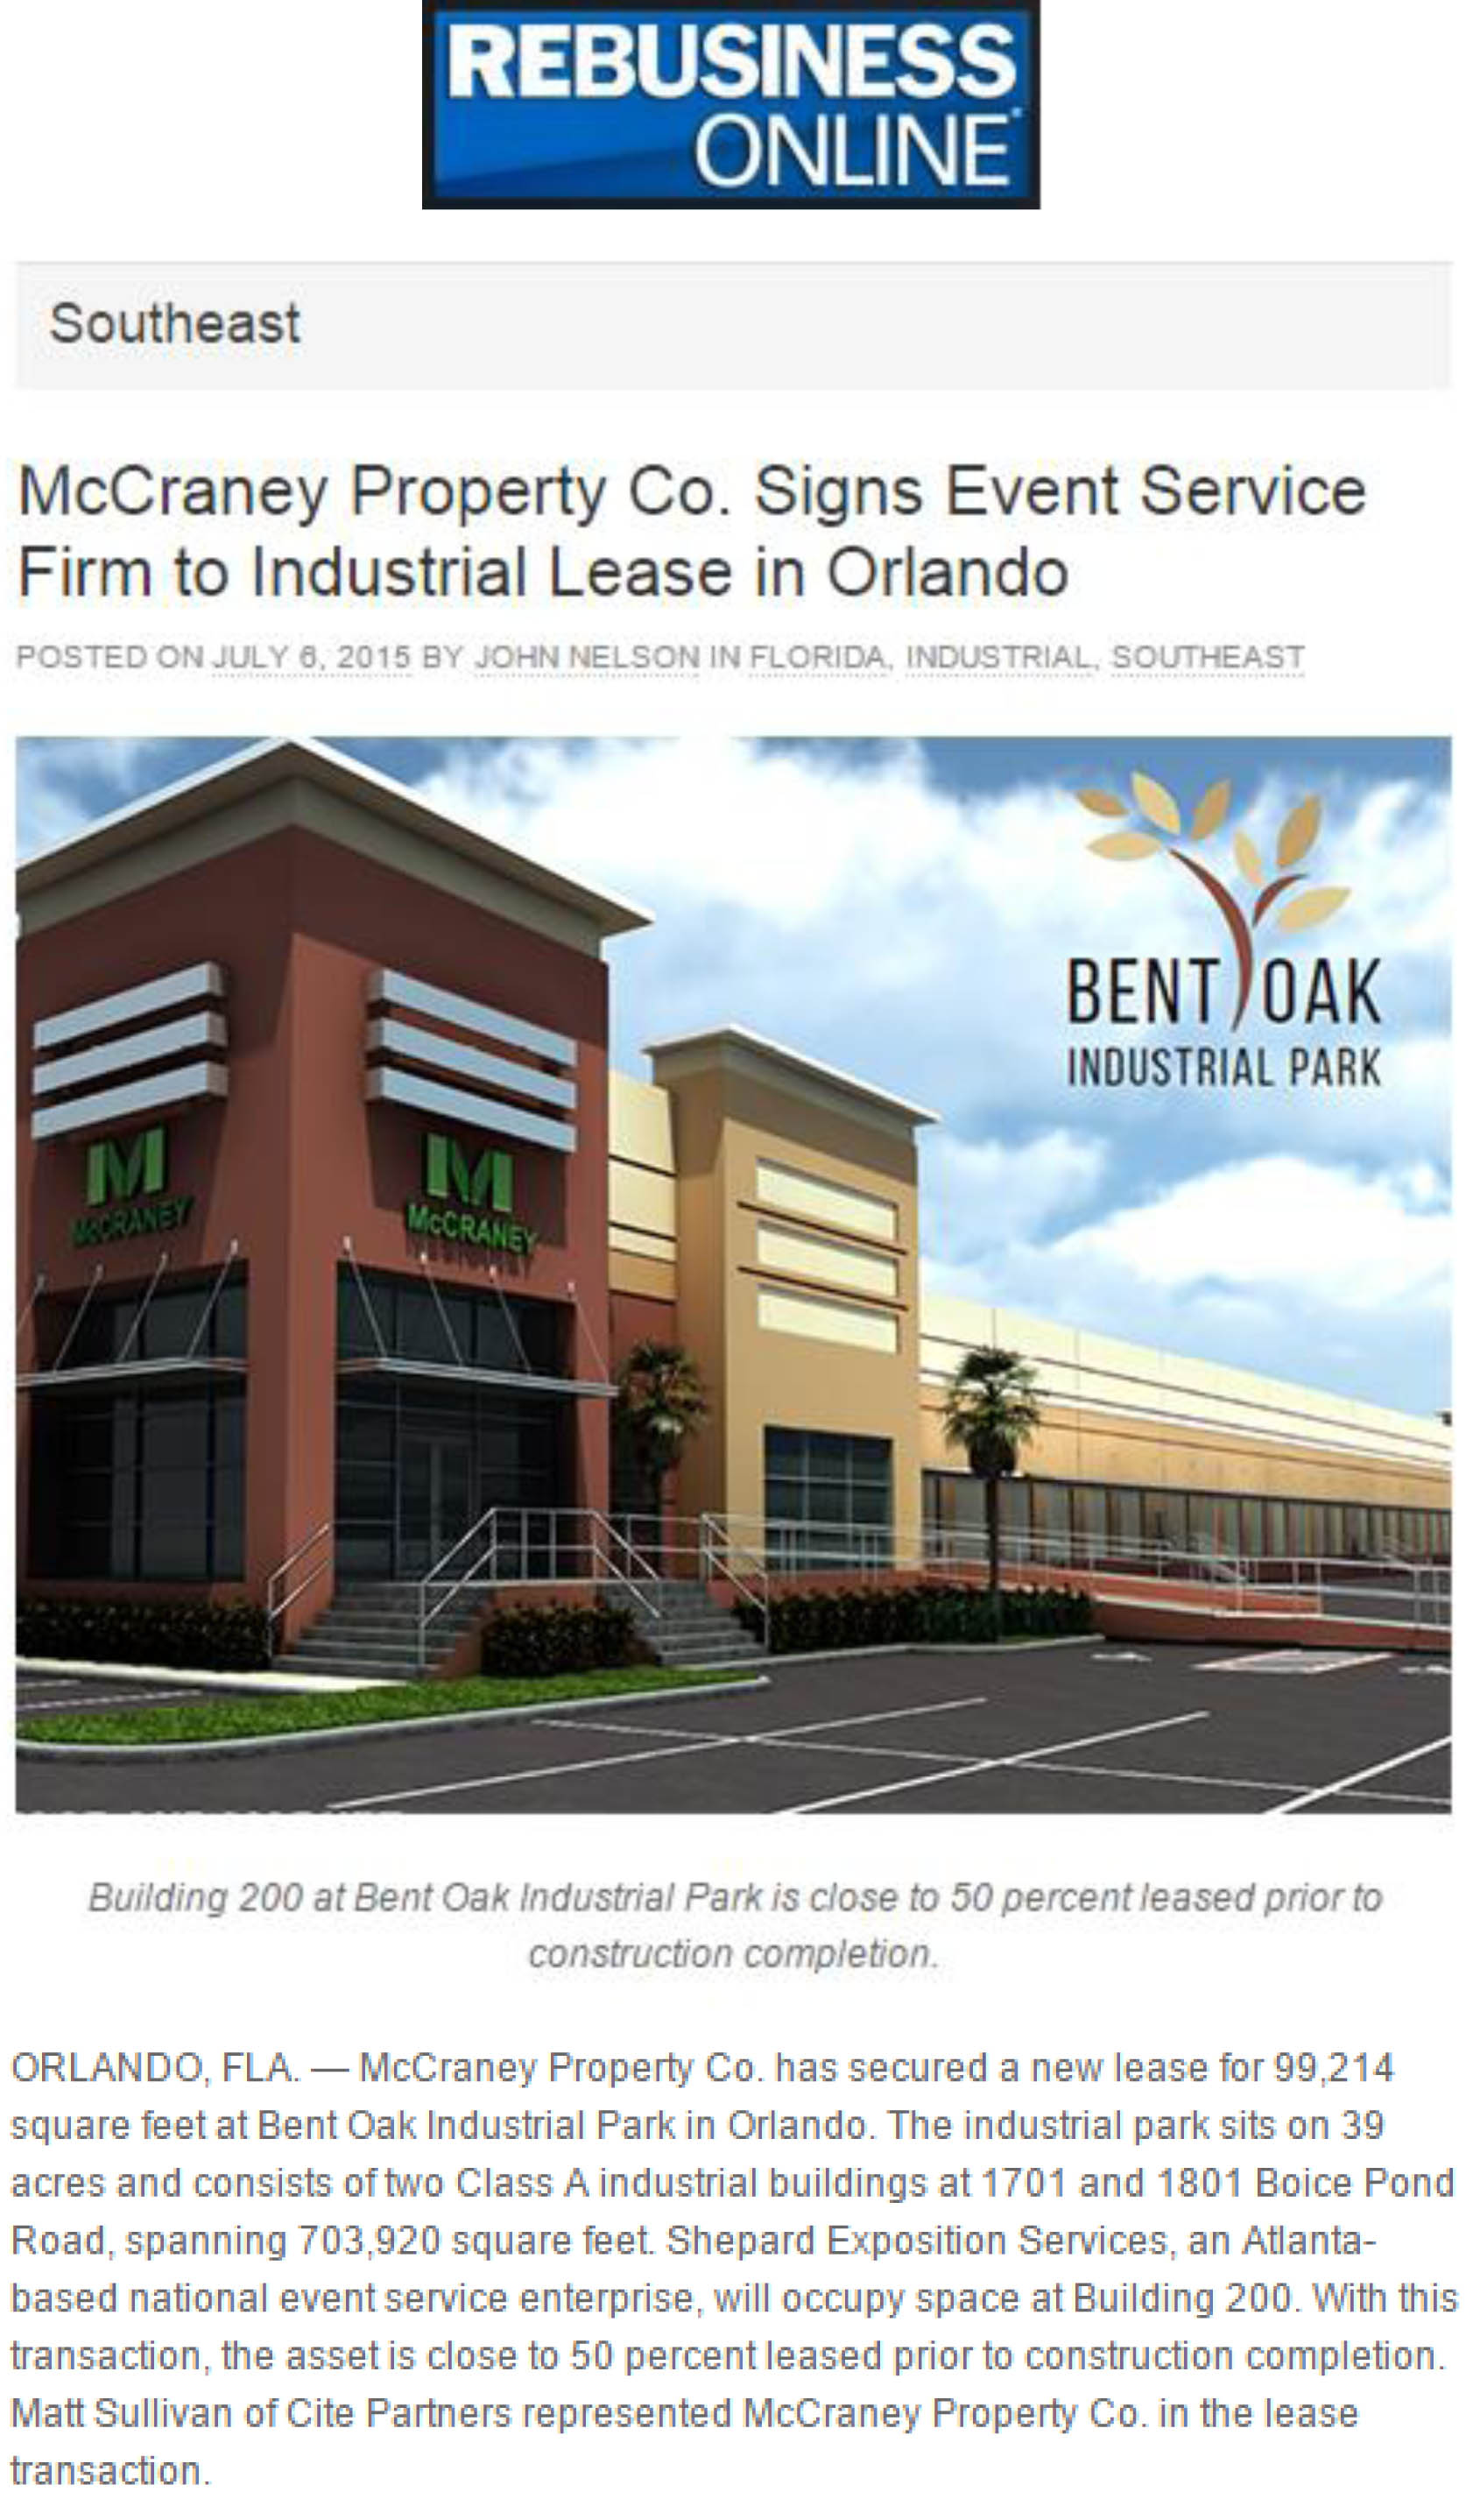 Southeast Real Estate Business - McCraney Property Co. Signs Event Service Firm to Industrial Lease in Orlando - 07.06